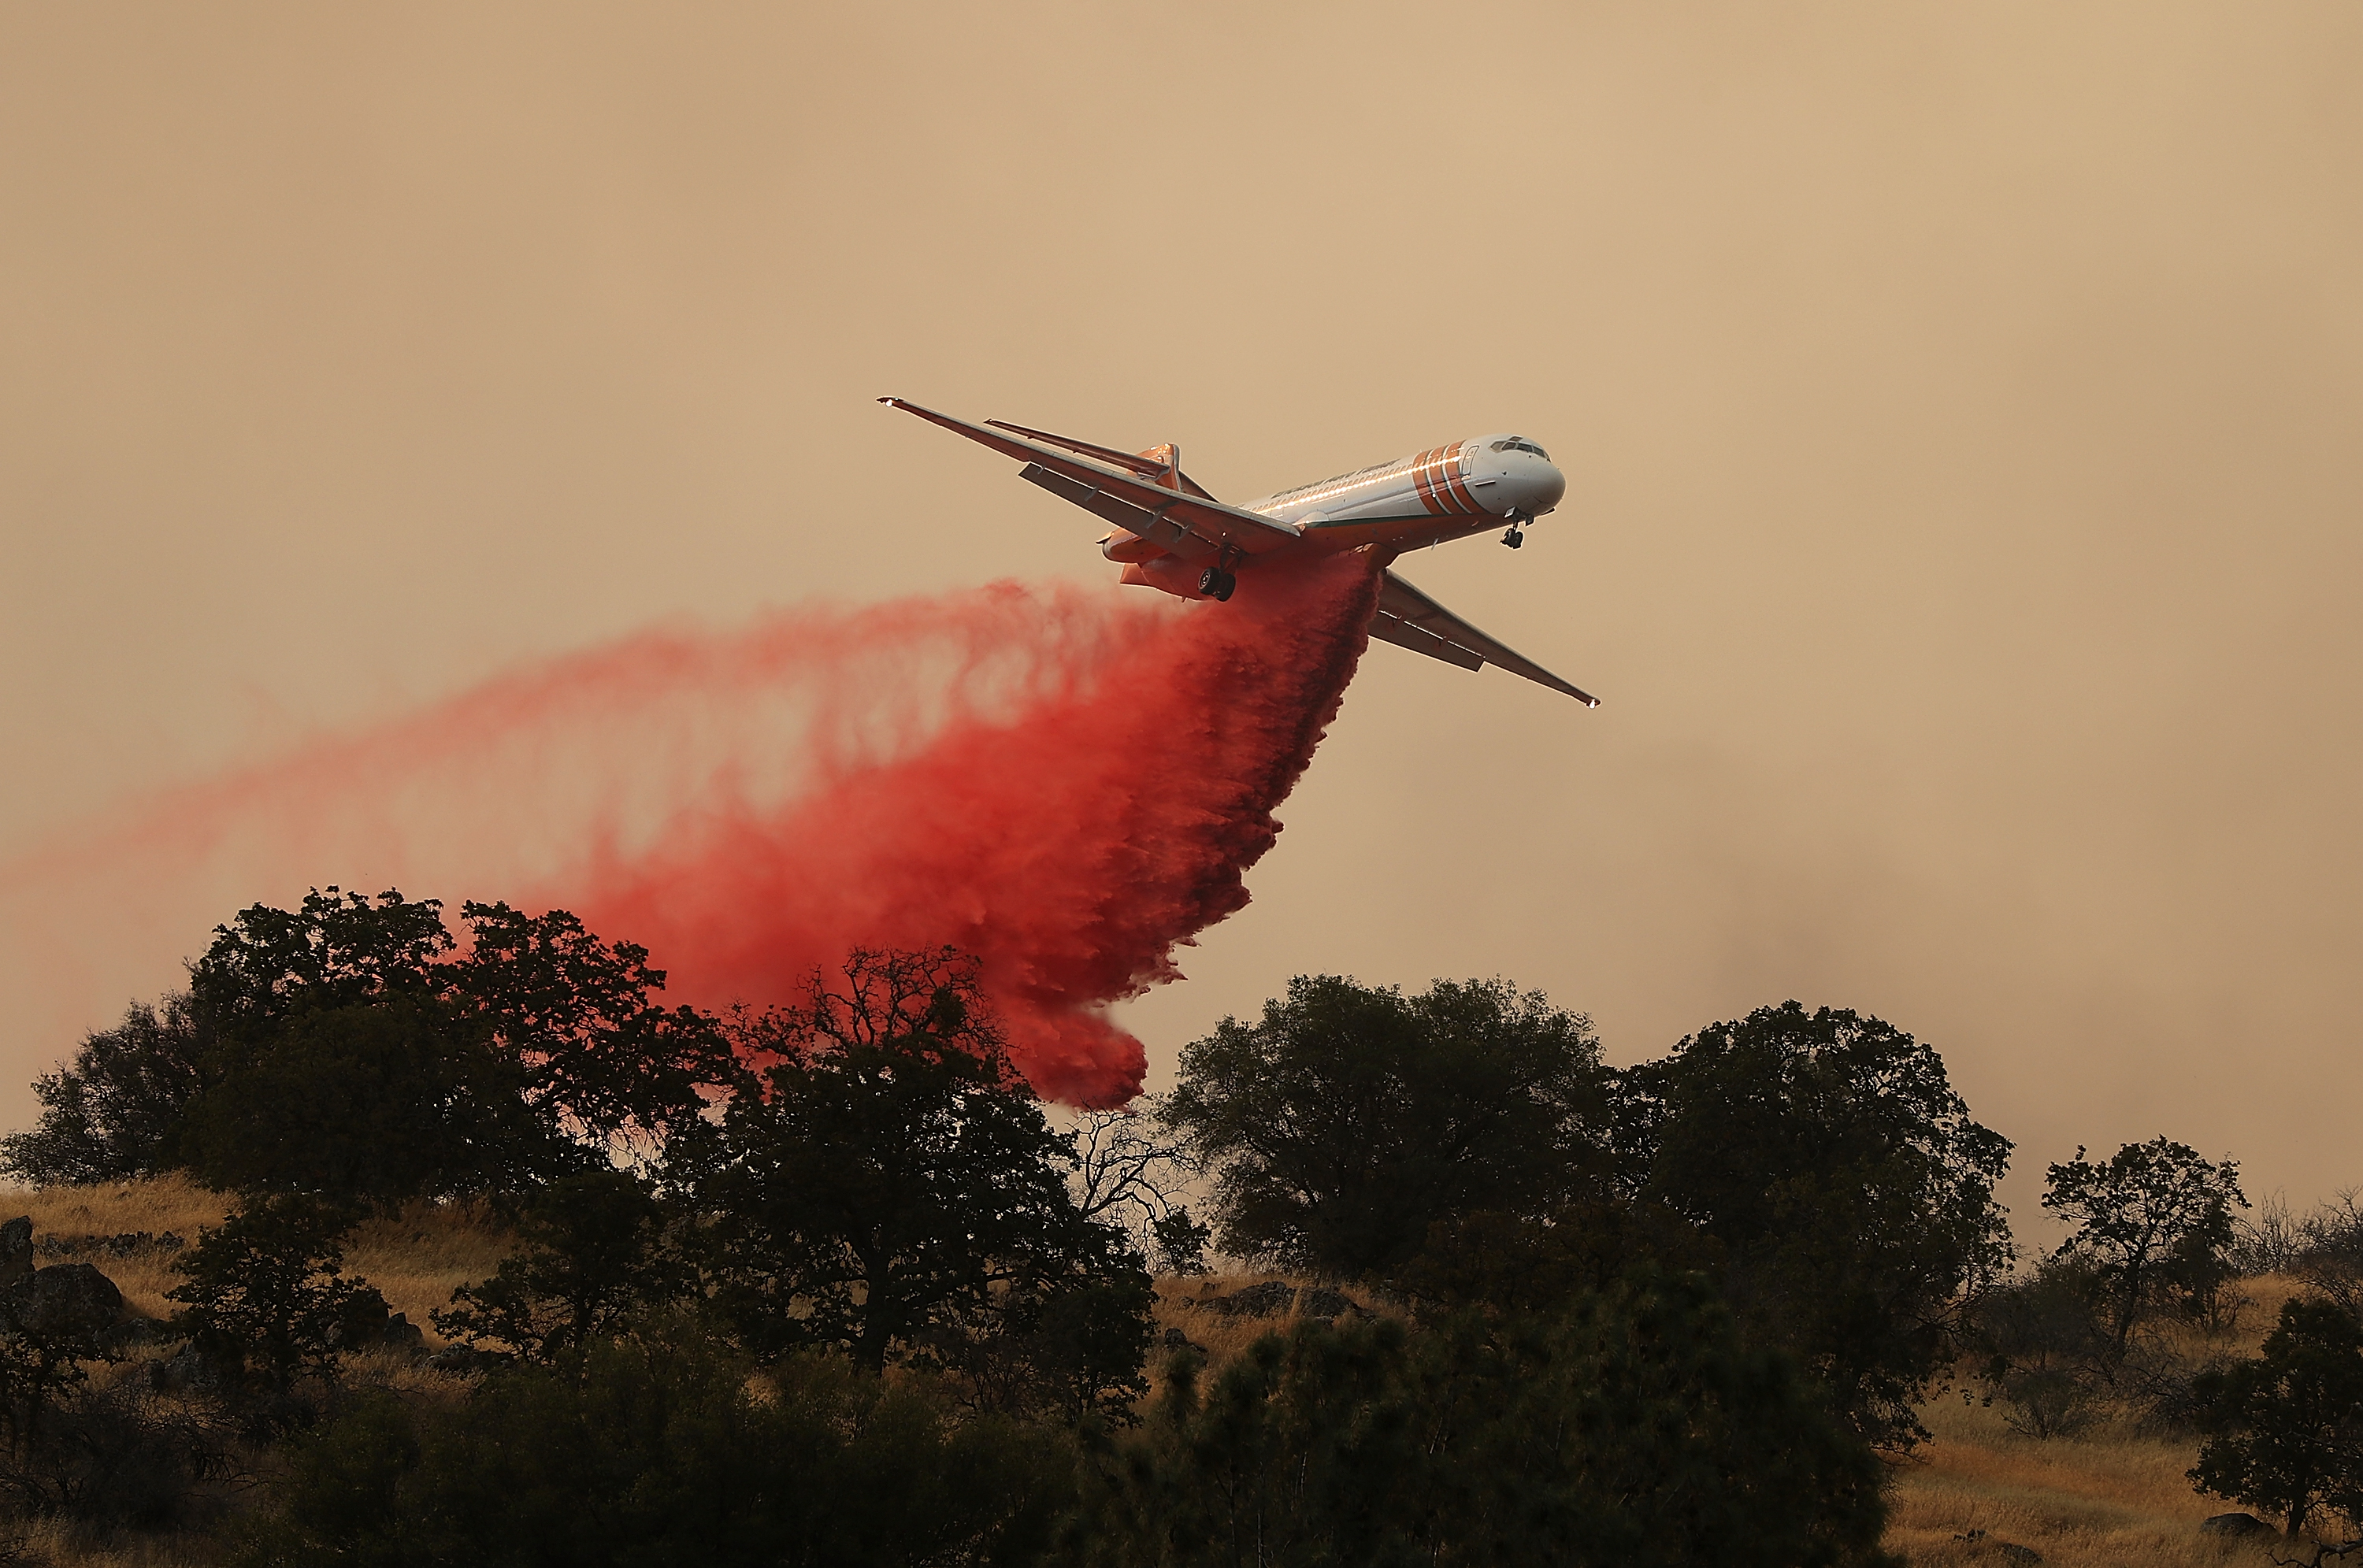 A plane drops fire retardant on a ridge ahead the Detwiler Fire on July 19, 2017 in Mariposa, California.